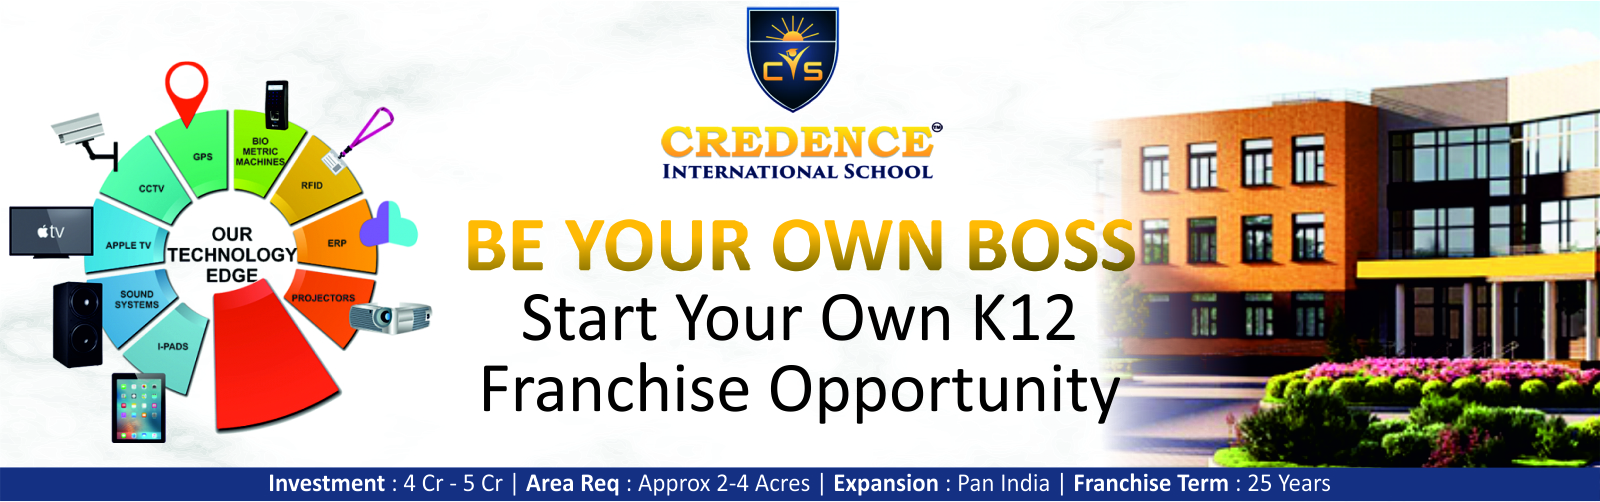 admin/photos/Credence International School